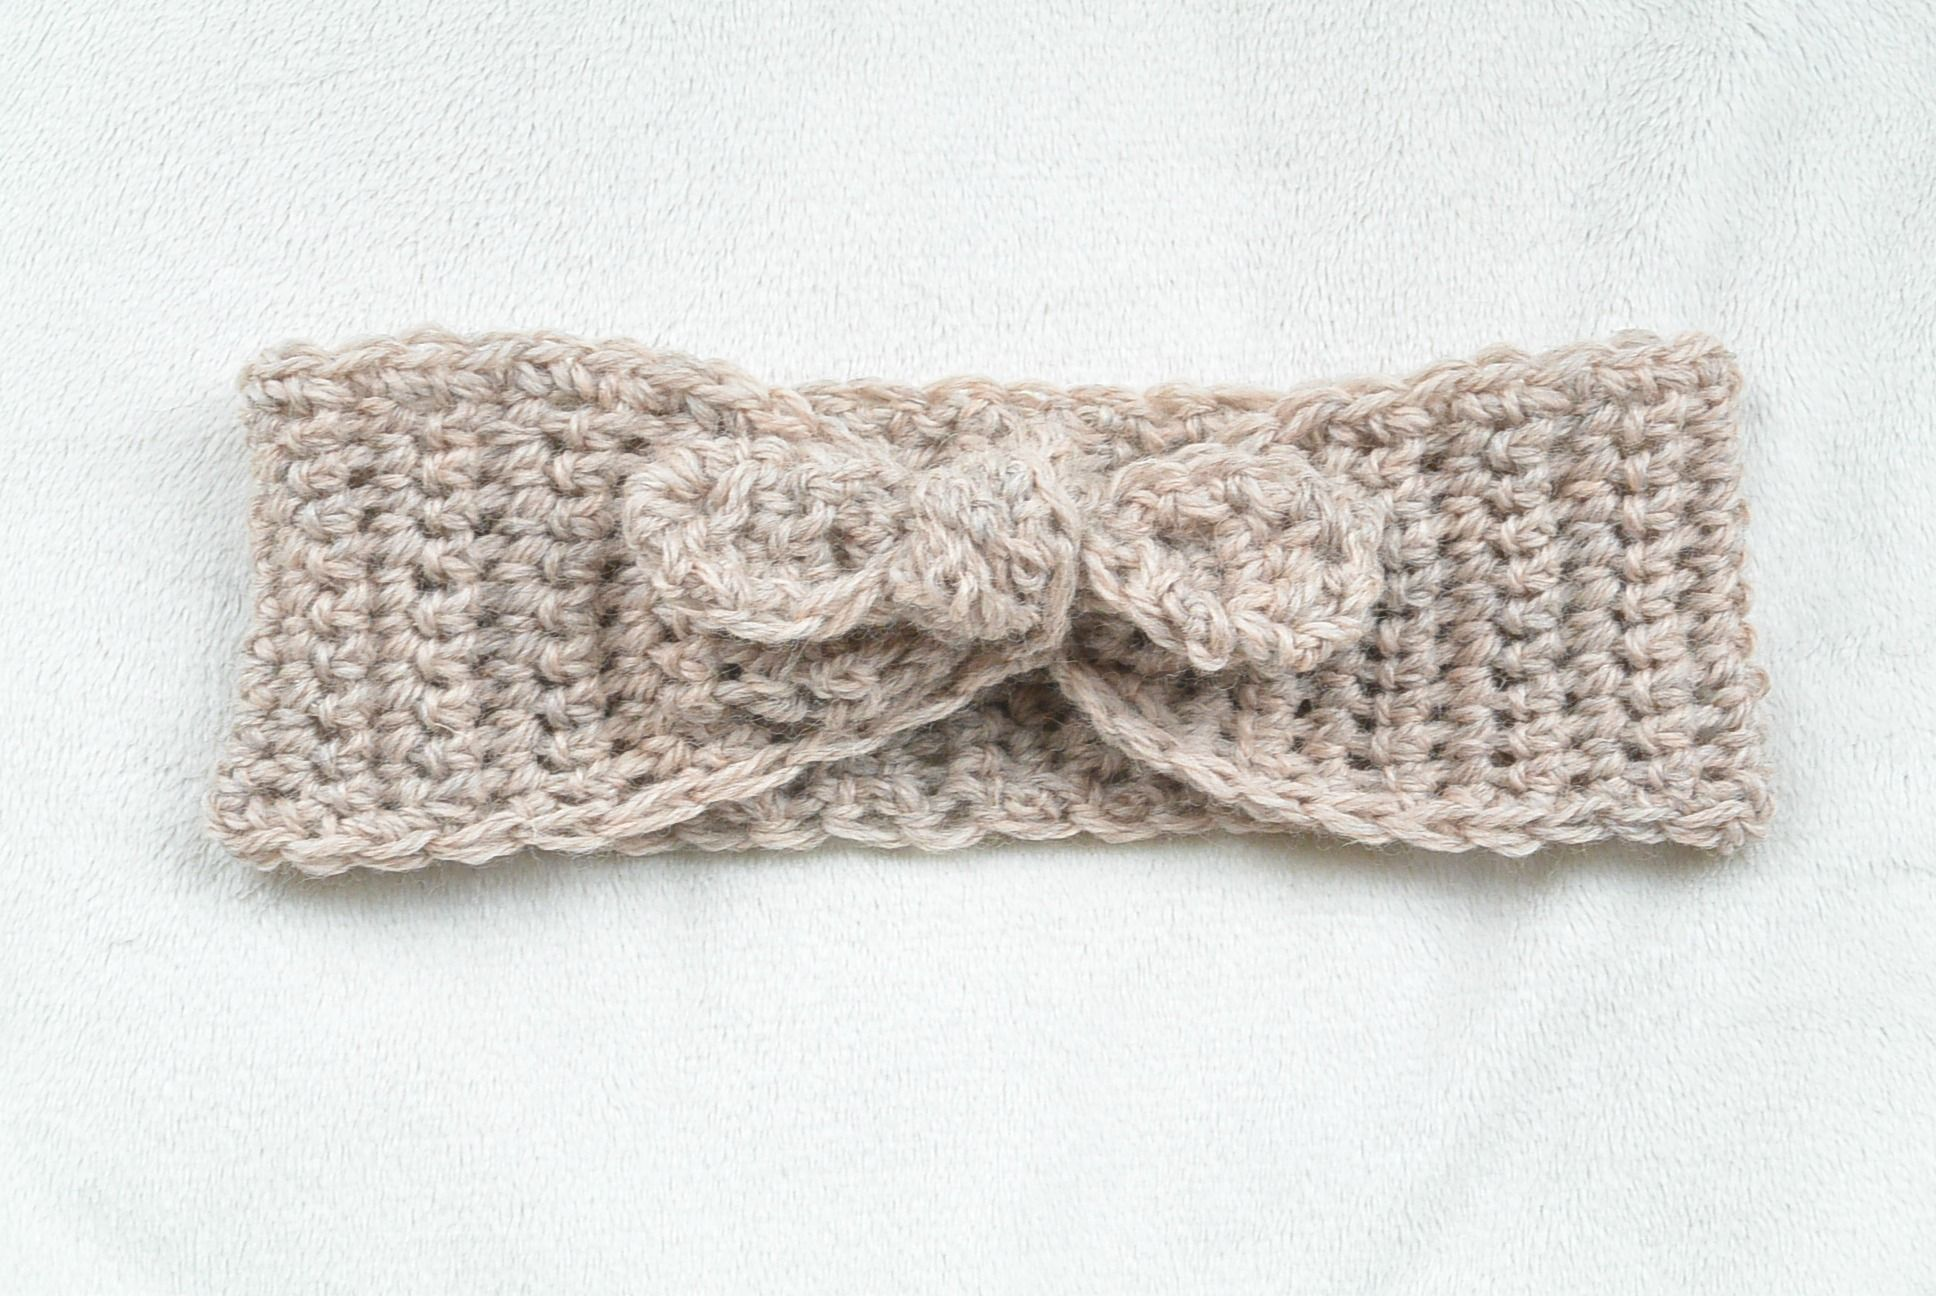 Naturally Chic Tie-Up Crochet Headband Pattern | Headband crochet ...